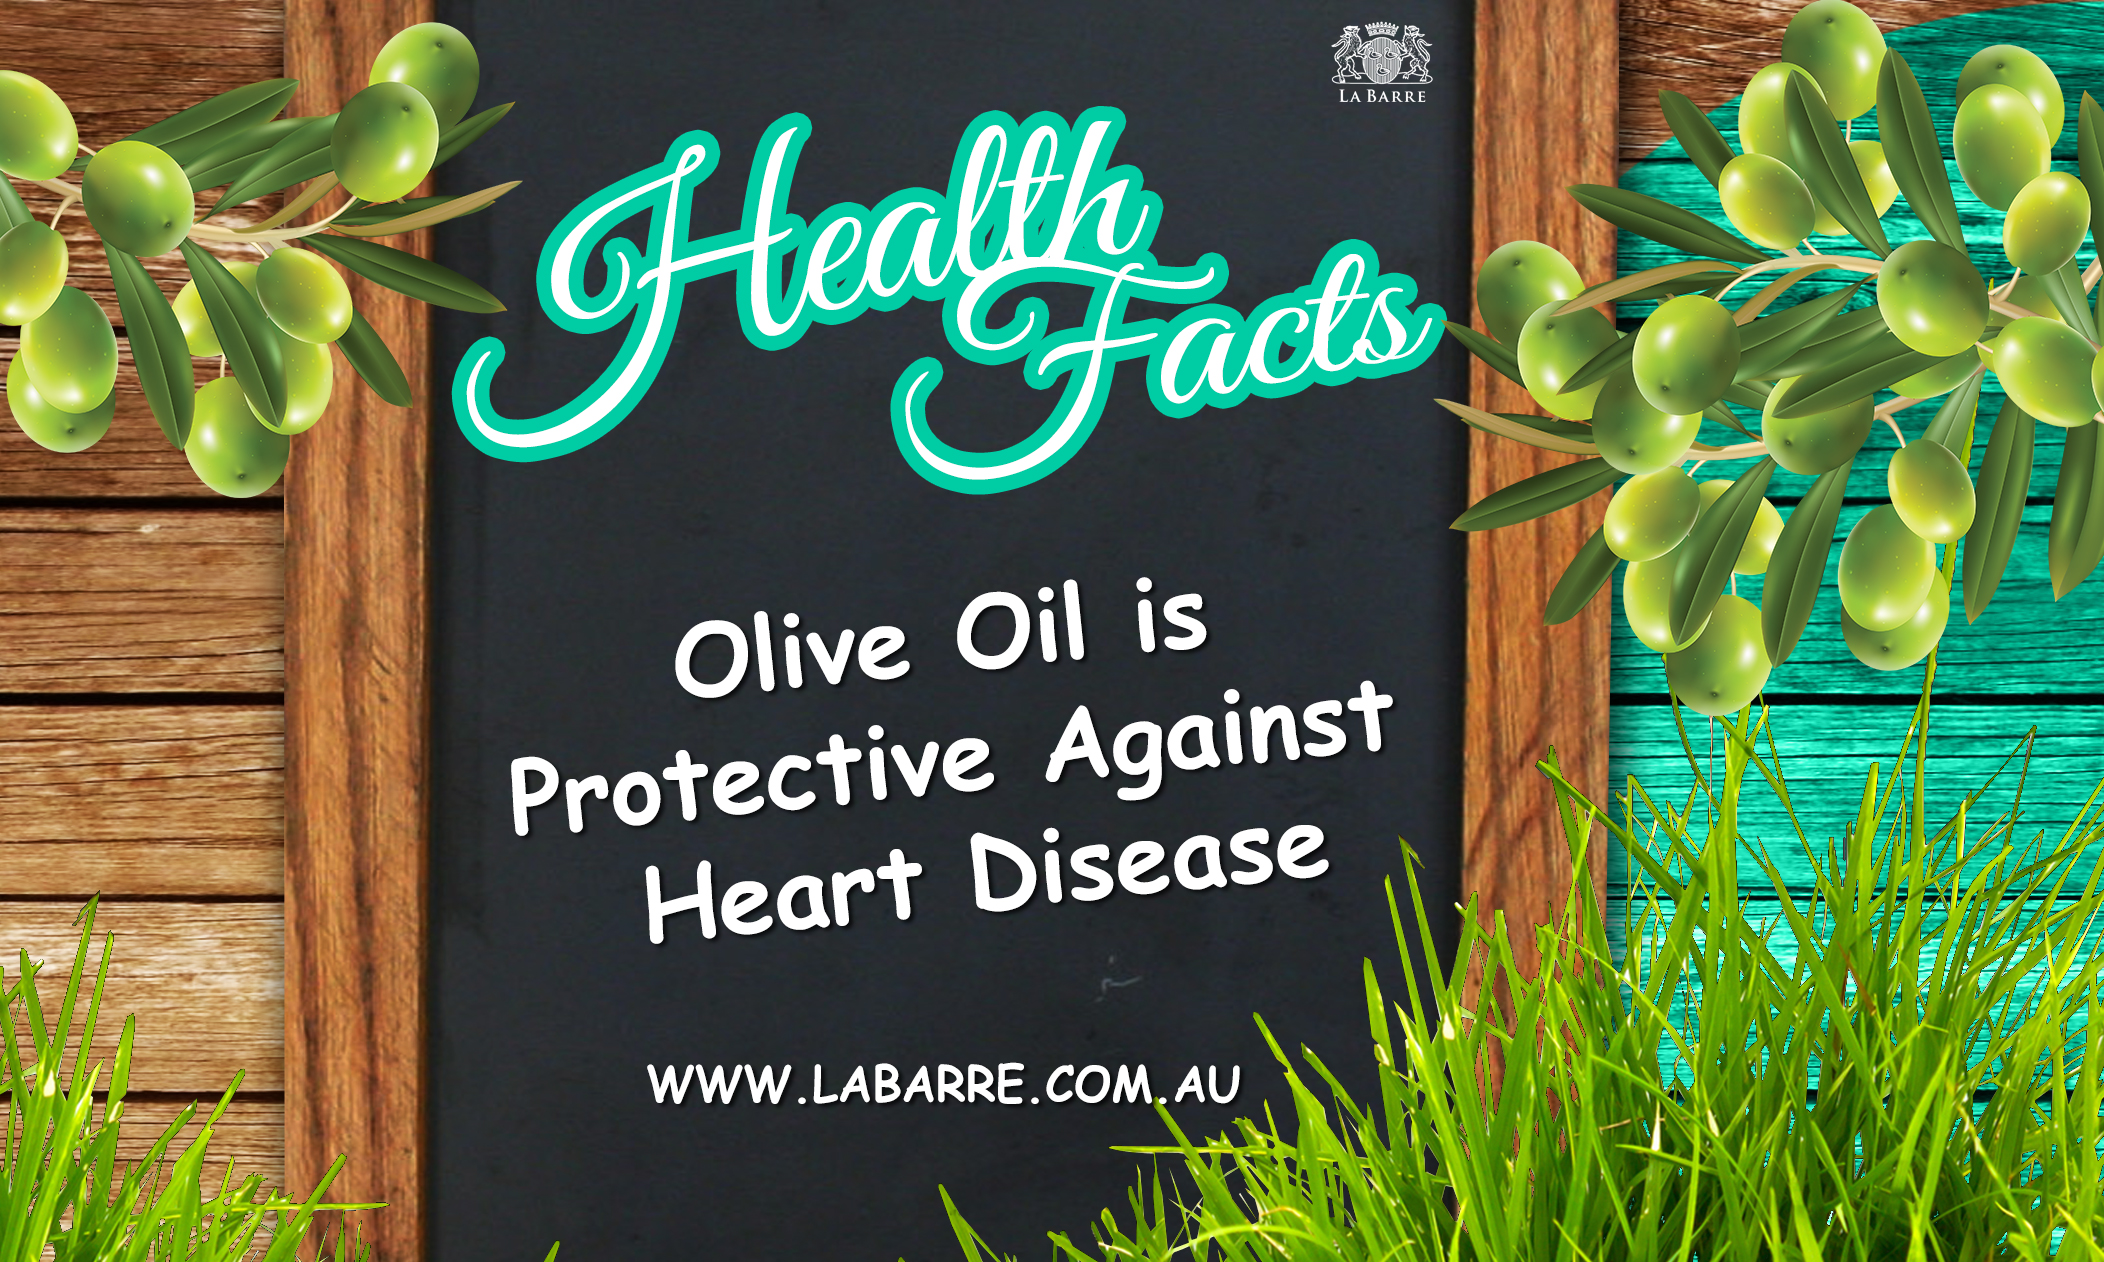 protective against heart disease